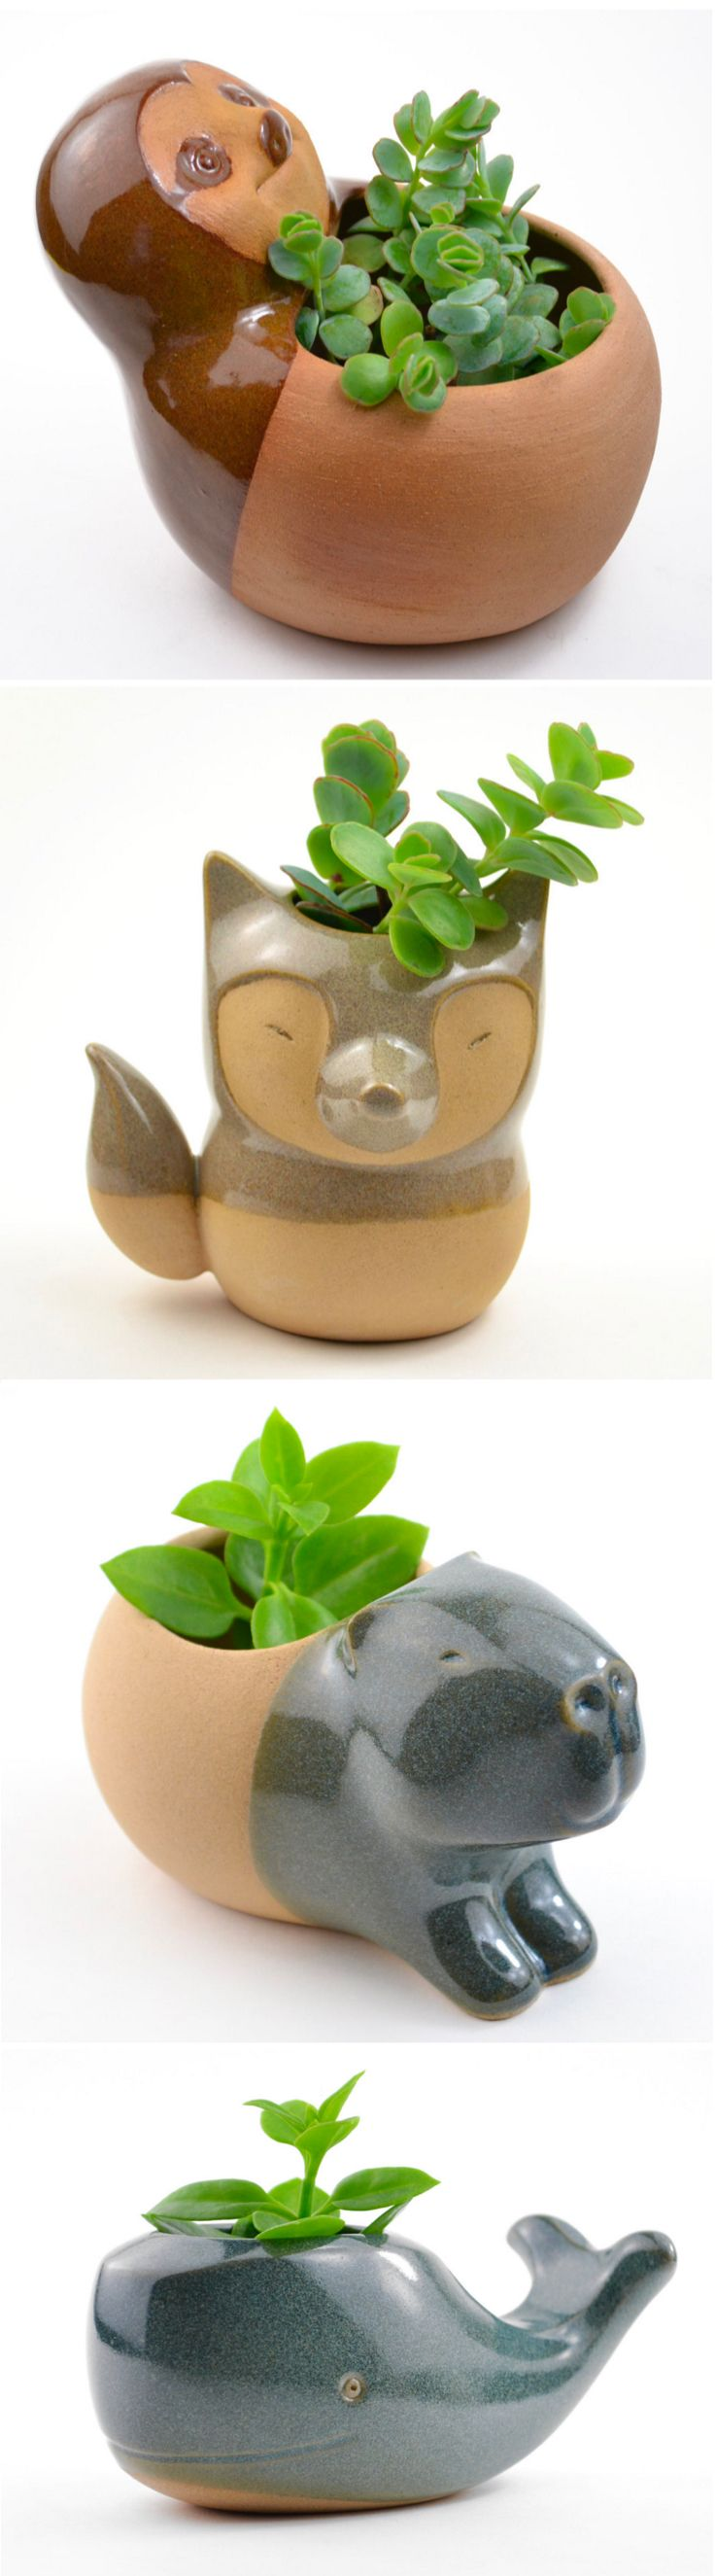 CumbucaChic has a wide selection of adorable ceramic animal planters that will…